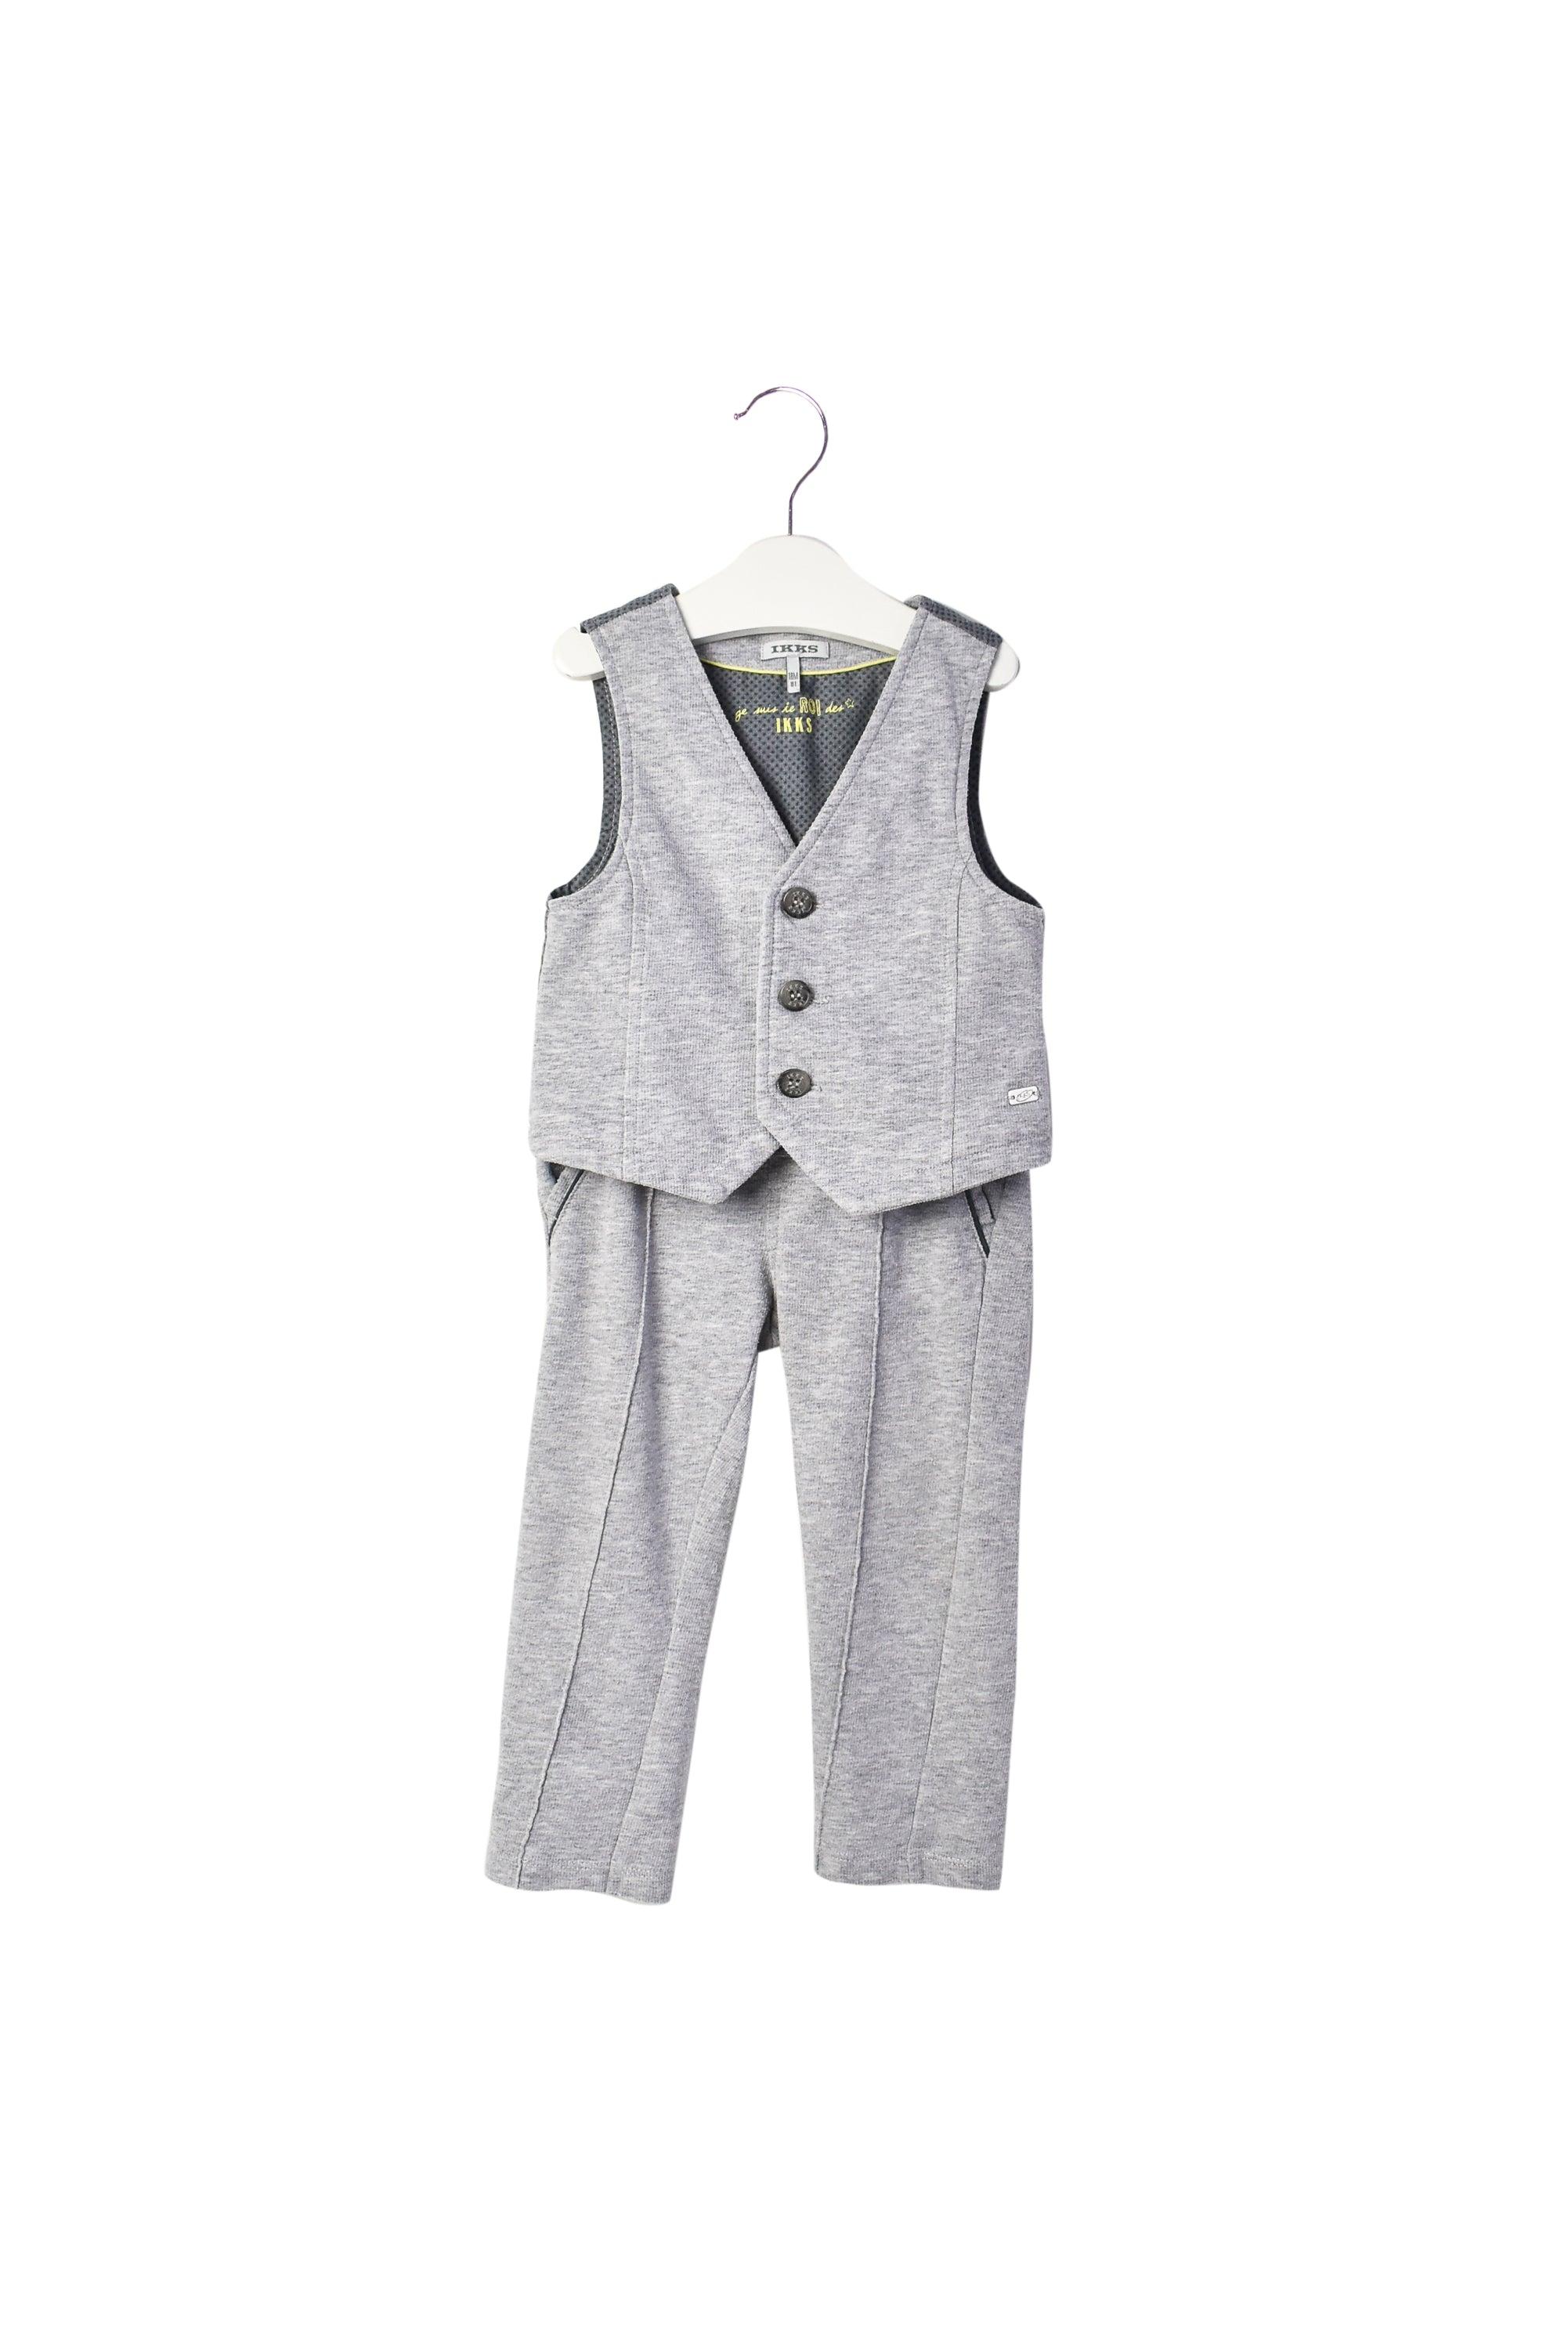 10007027 IKKS Baby~Jacket and Pants 18M at Retykle